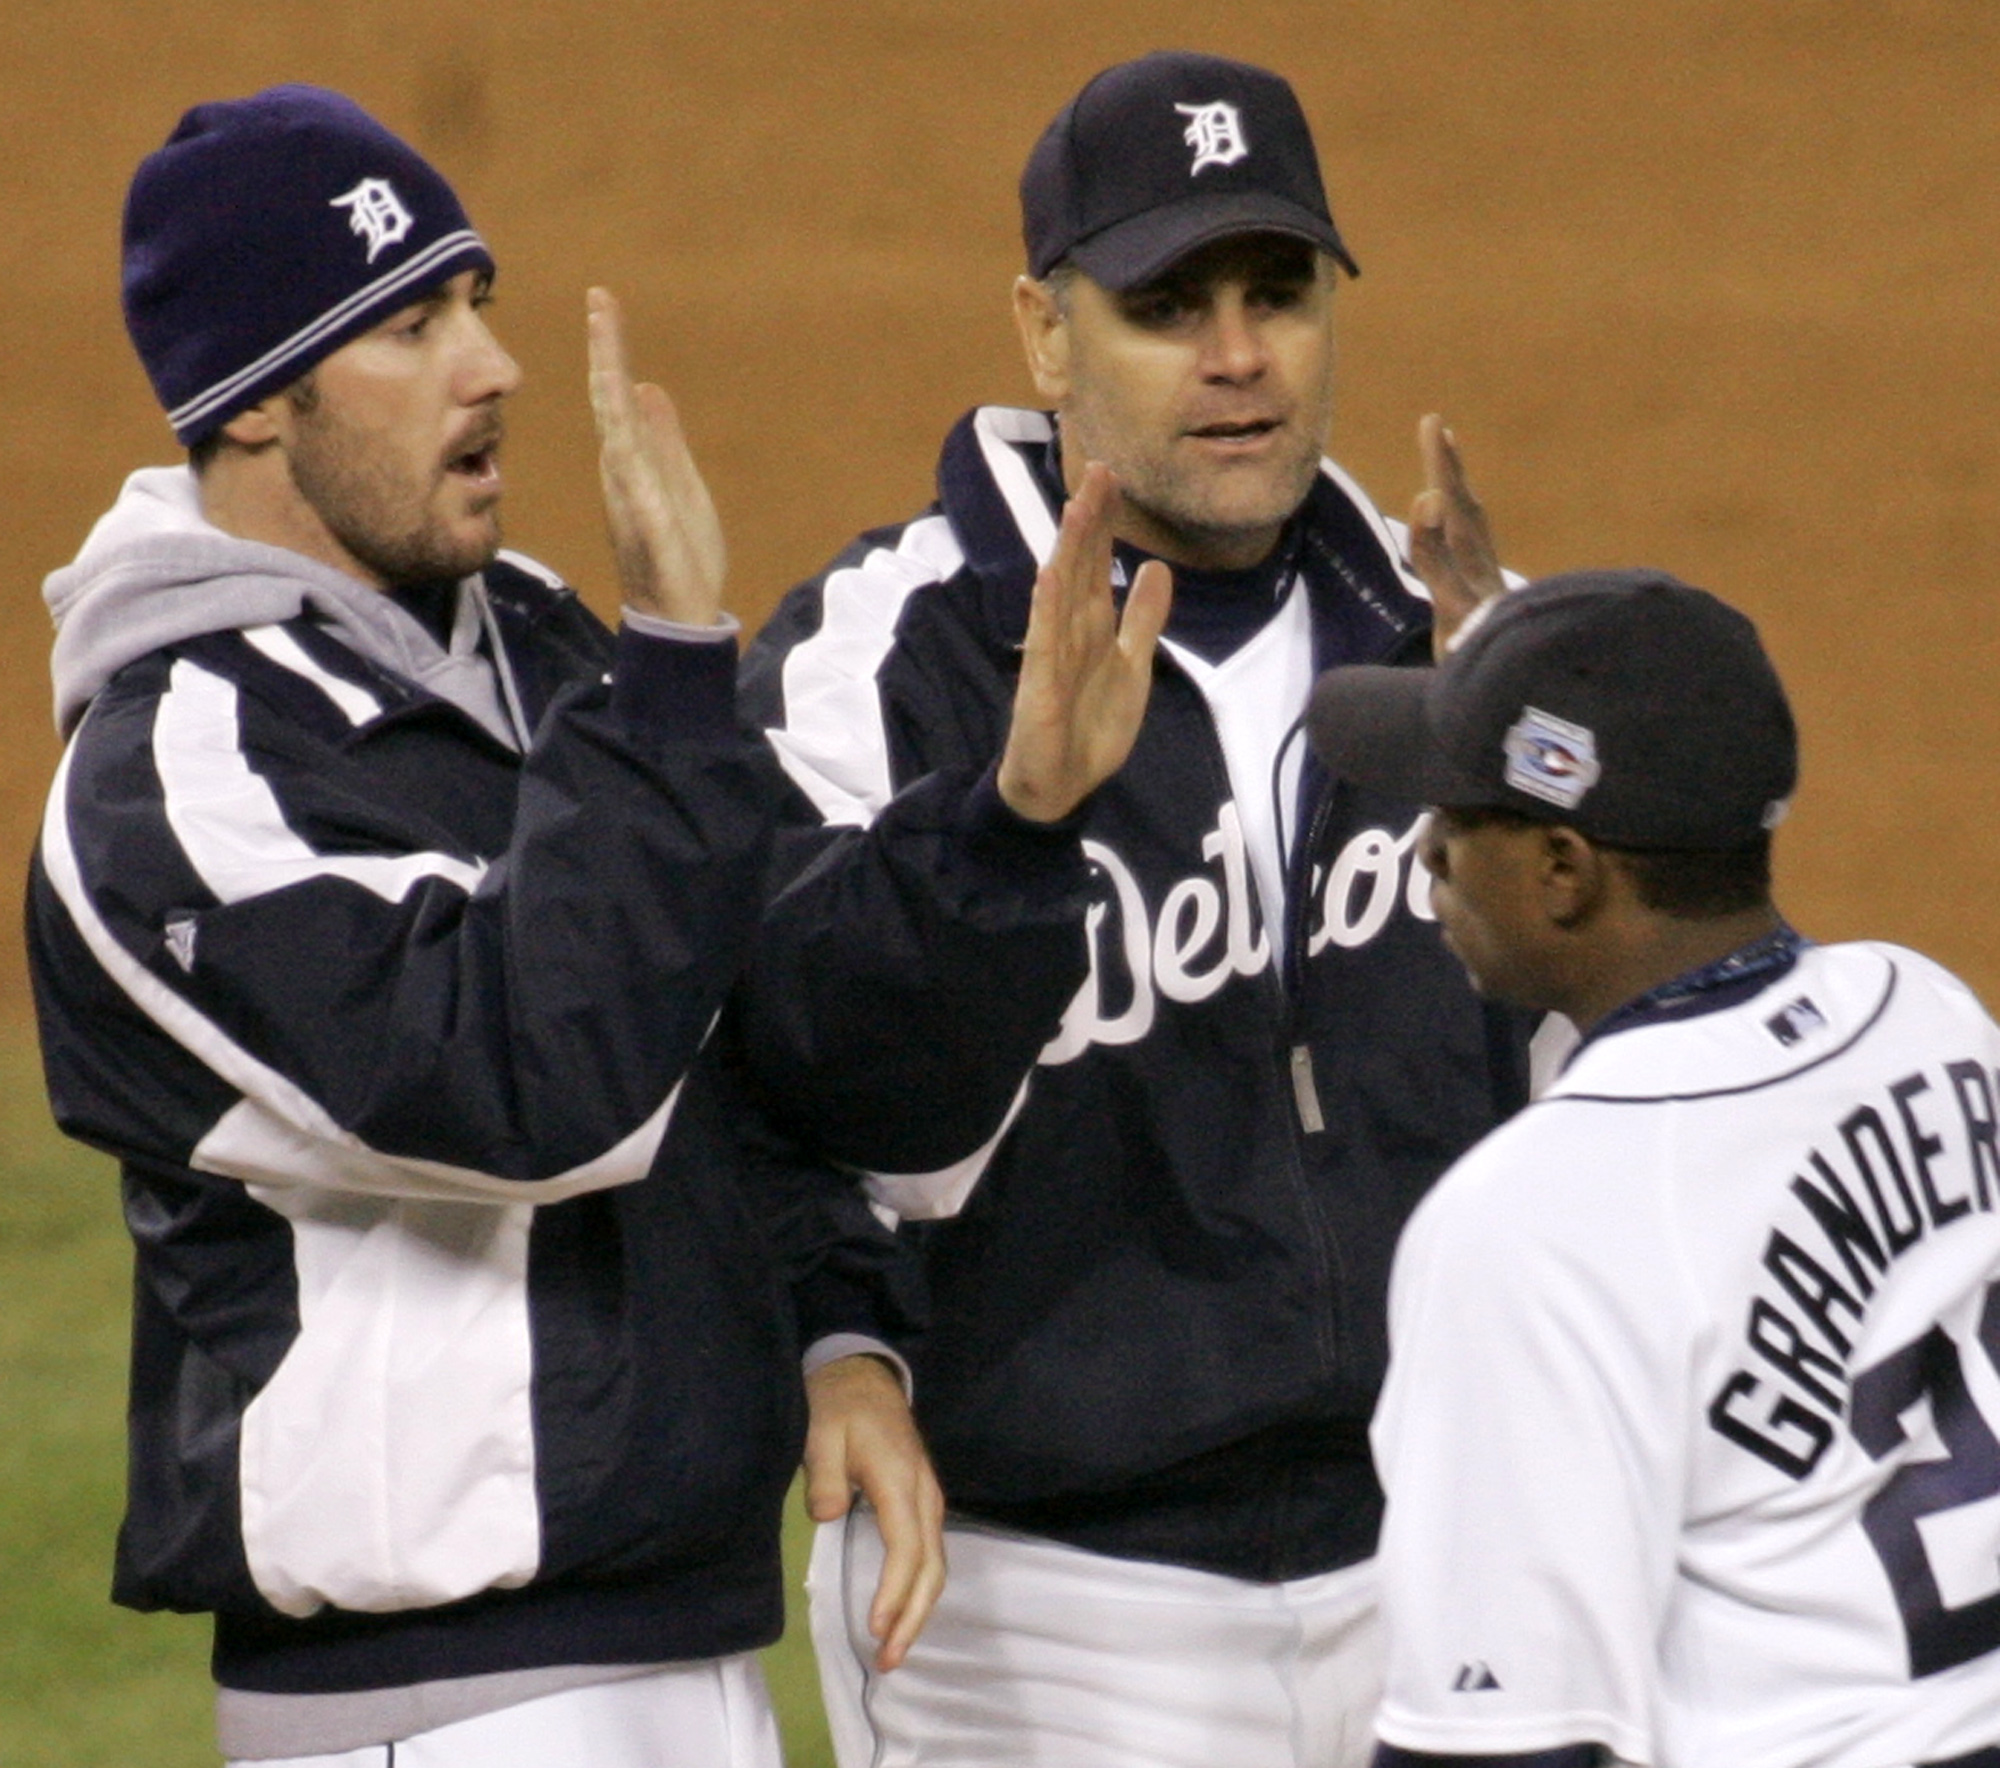 Detroit Tigers' Kenny Rogers, center, celebrates  with teammates Justin Verlander, left, and Curtis Granderson after the Tigers 3-1 victory over the St. Louis Cardinals in Game 2 of the World Series on Sunday, Oct. 22, 2006 in Detroit.  (AP Photo/Paul Sancya)